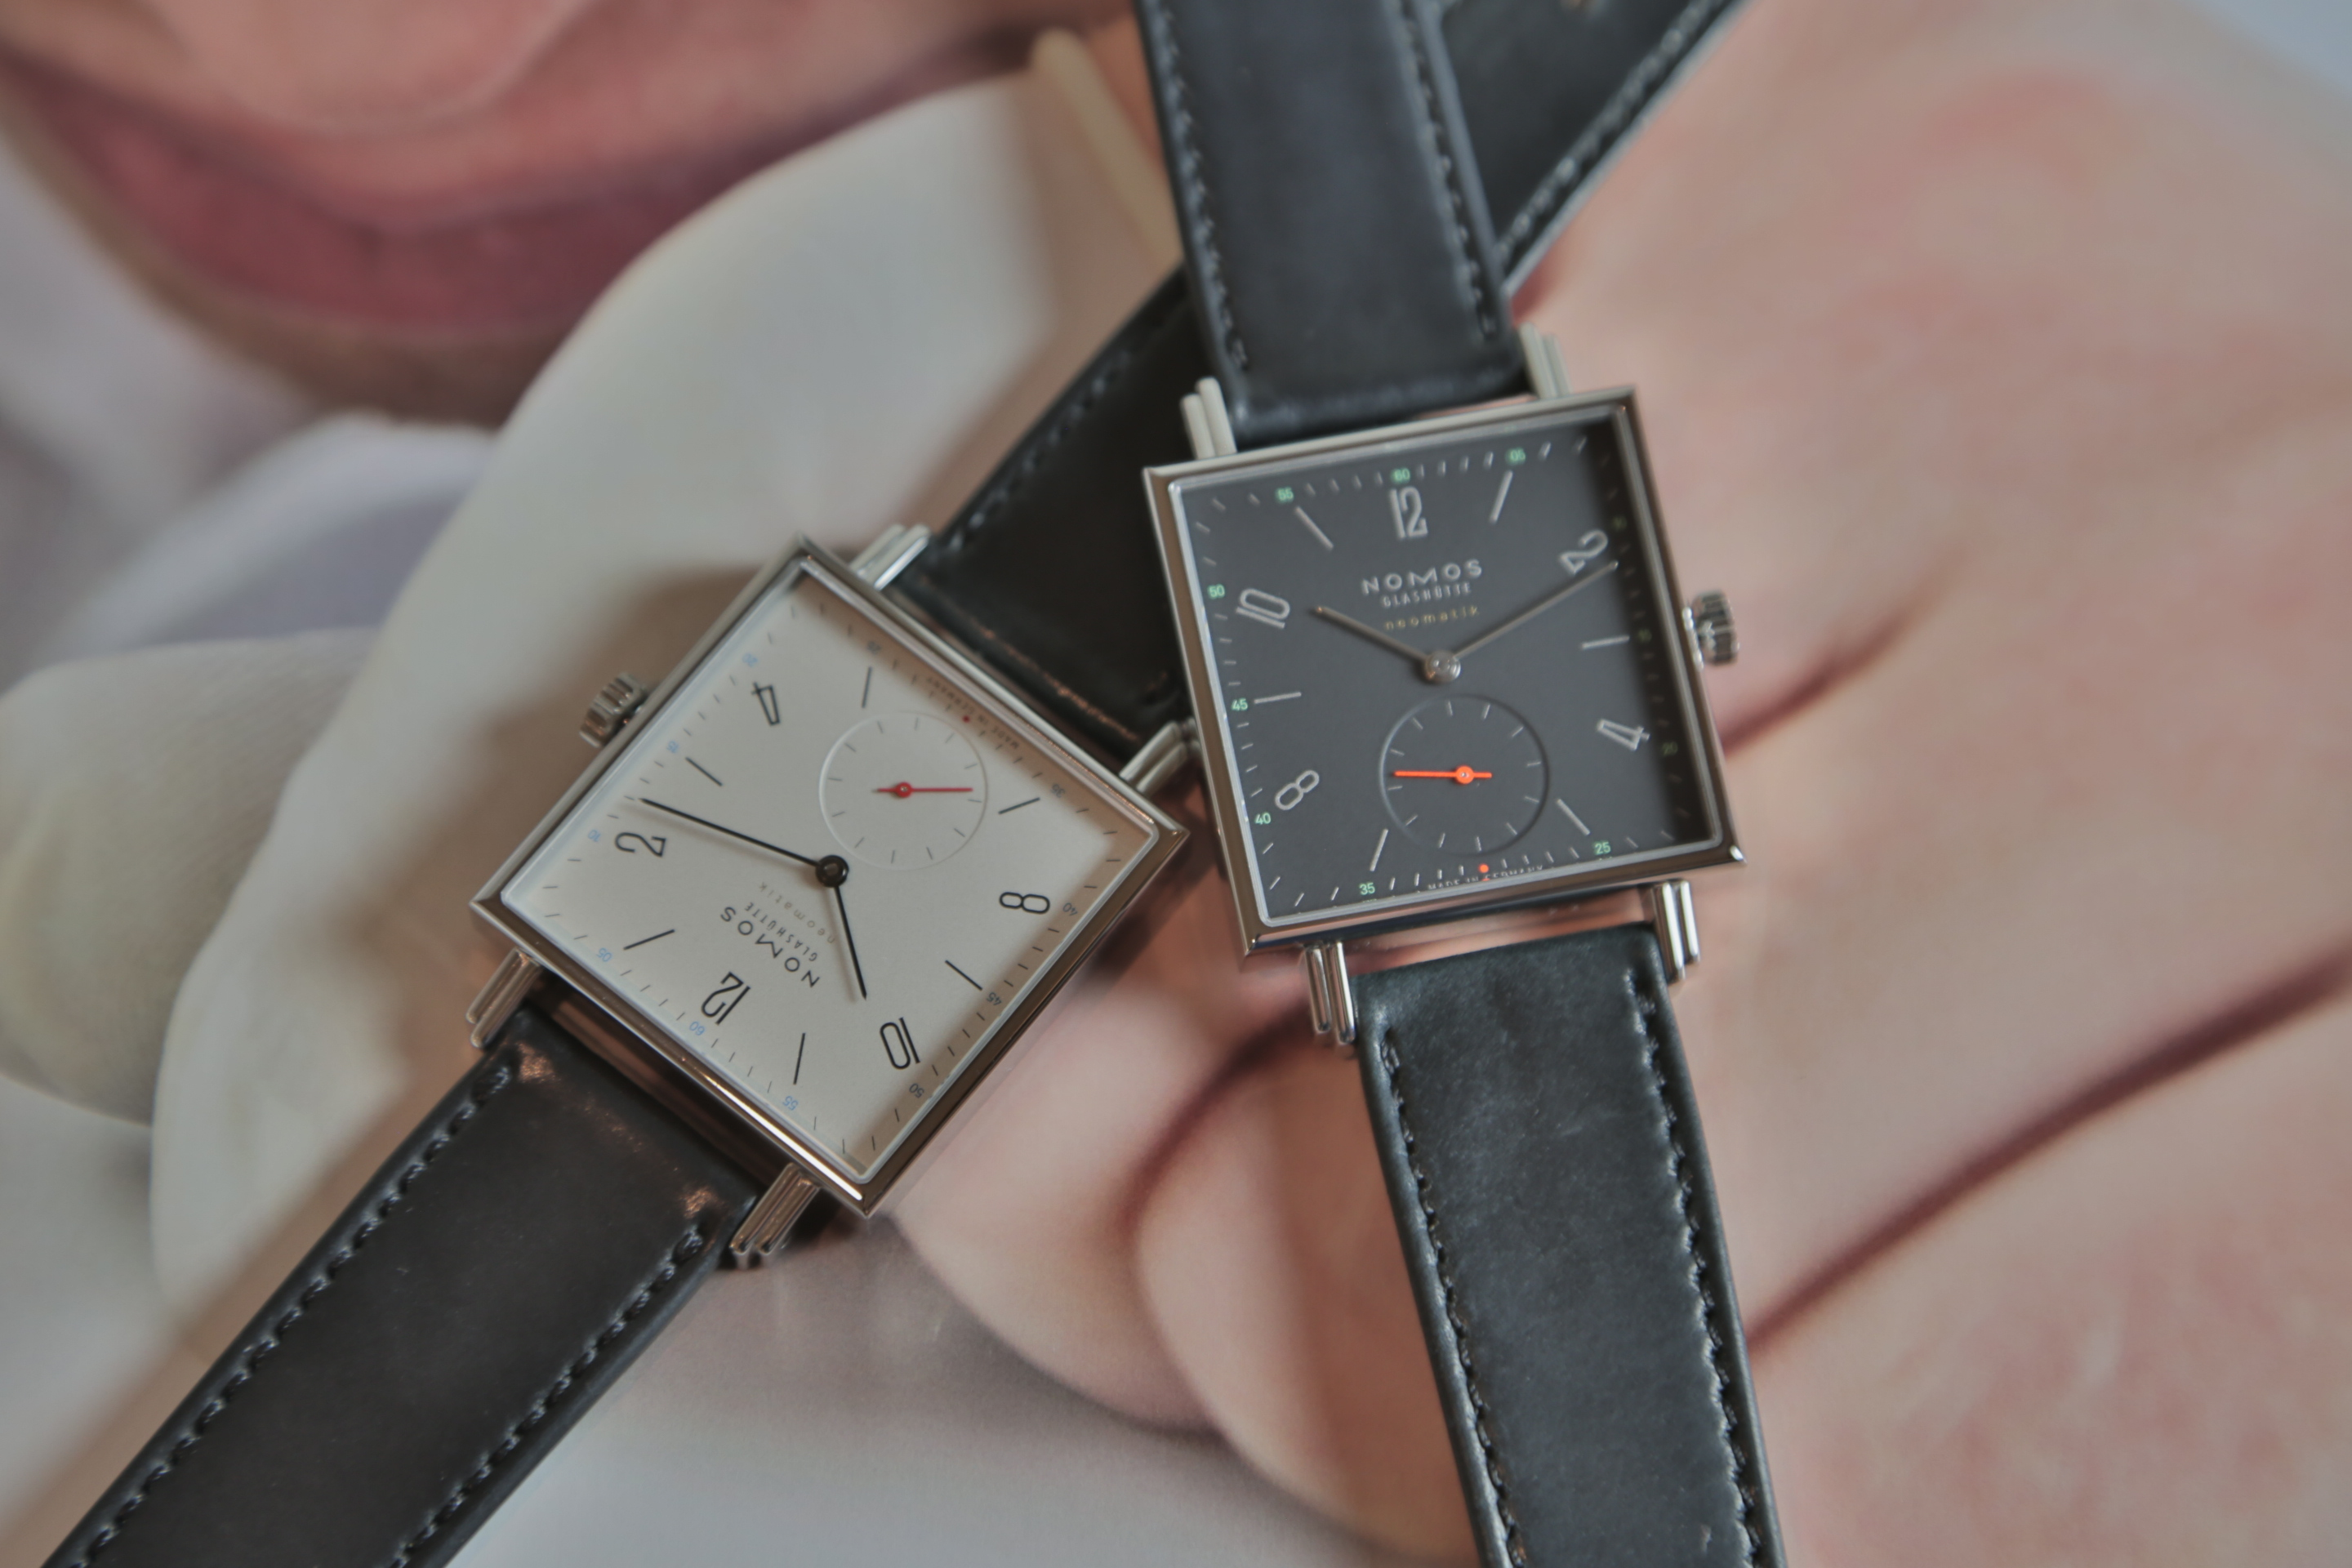 Baselworld 2016: NOMOS Glashütte Watch Collection Preview Video